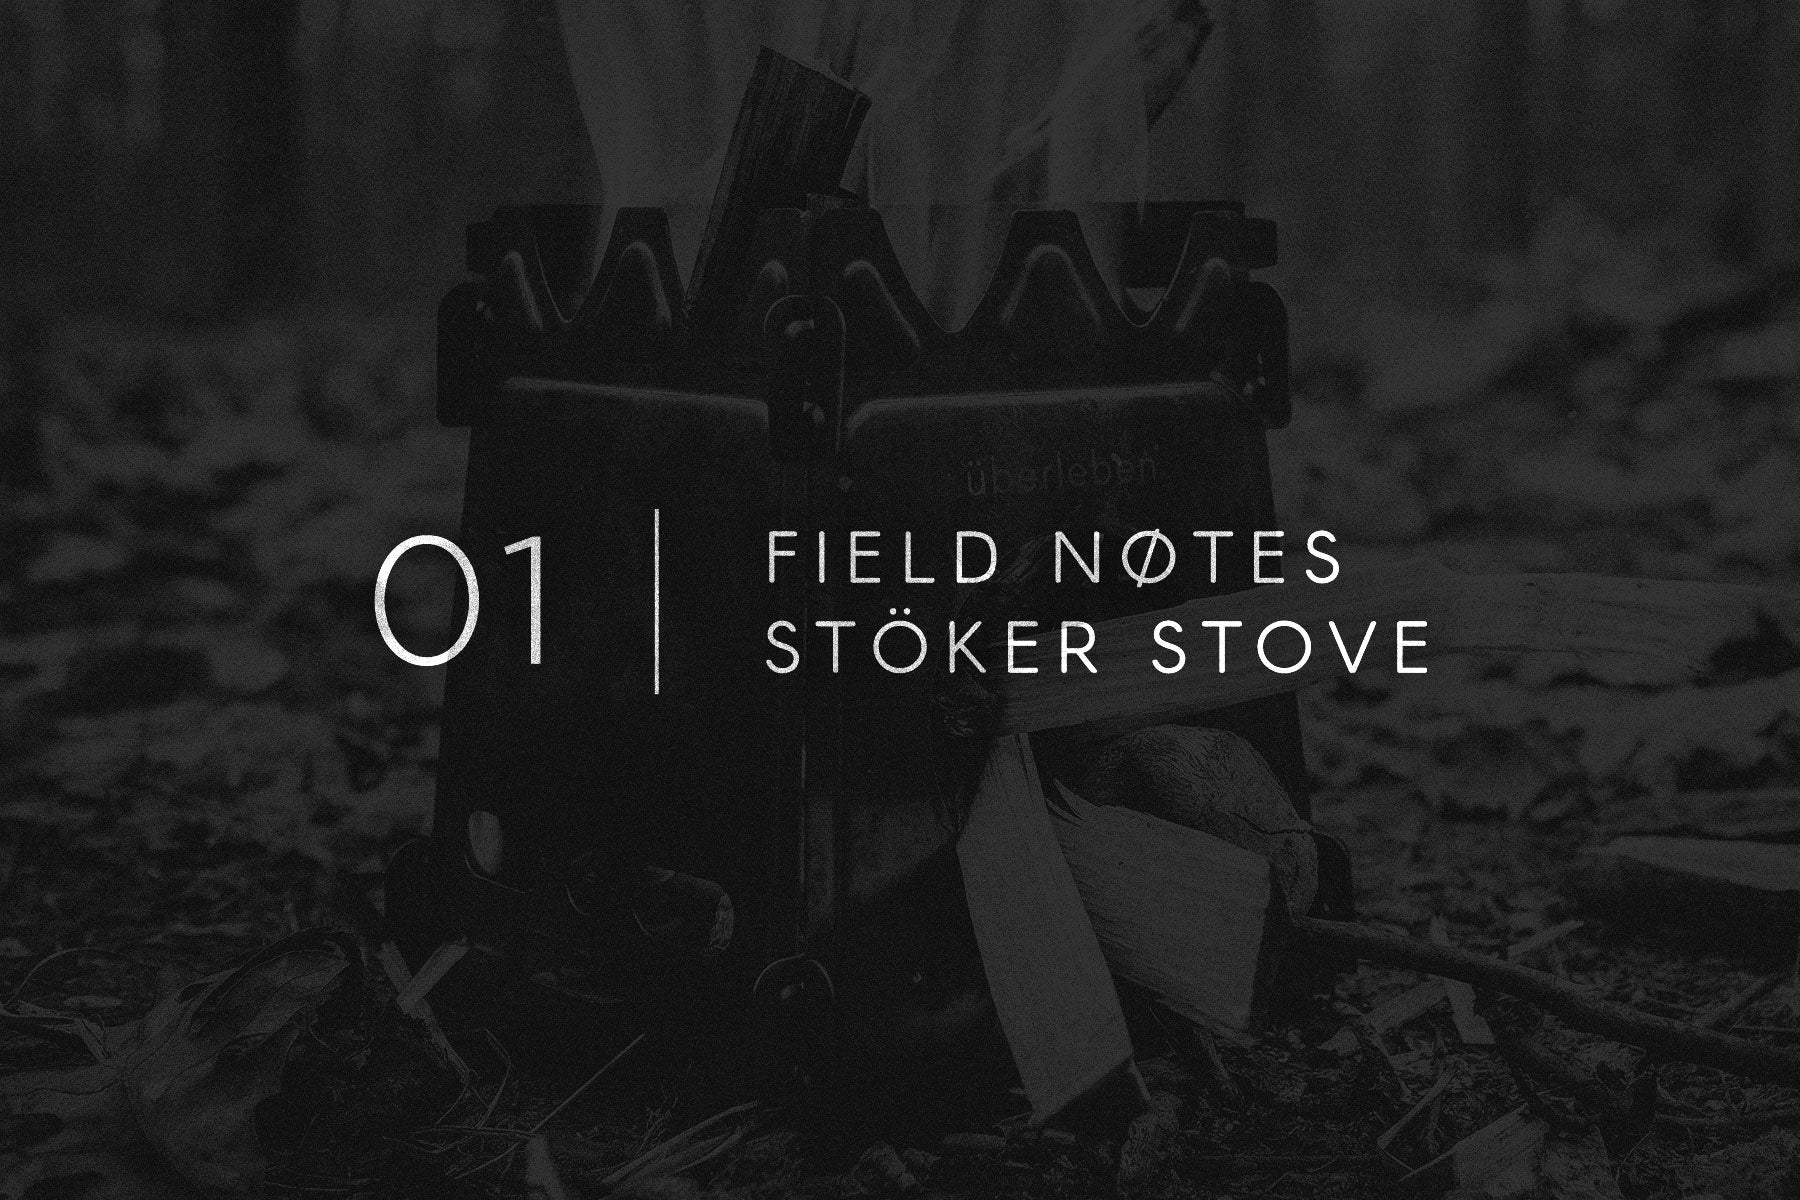 Field Notes 01 - Stöker Stove